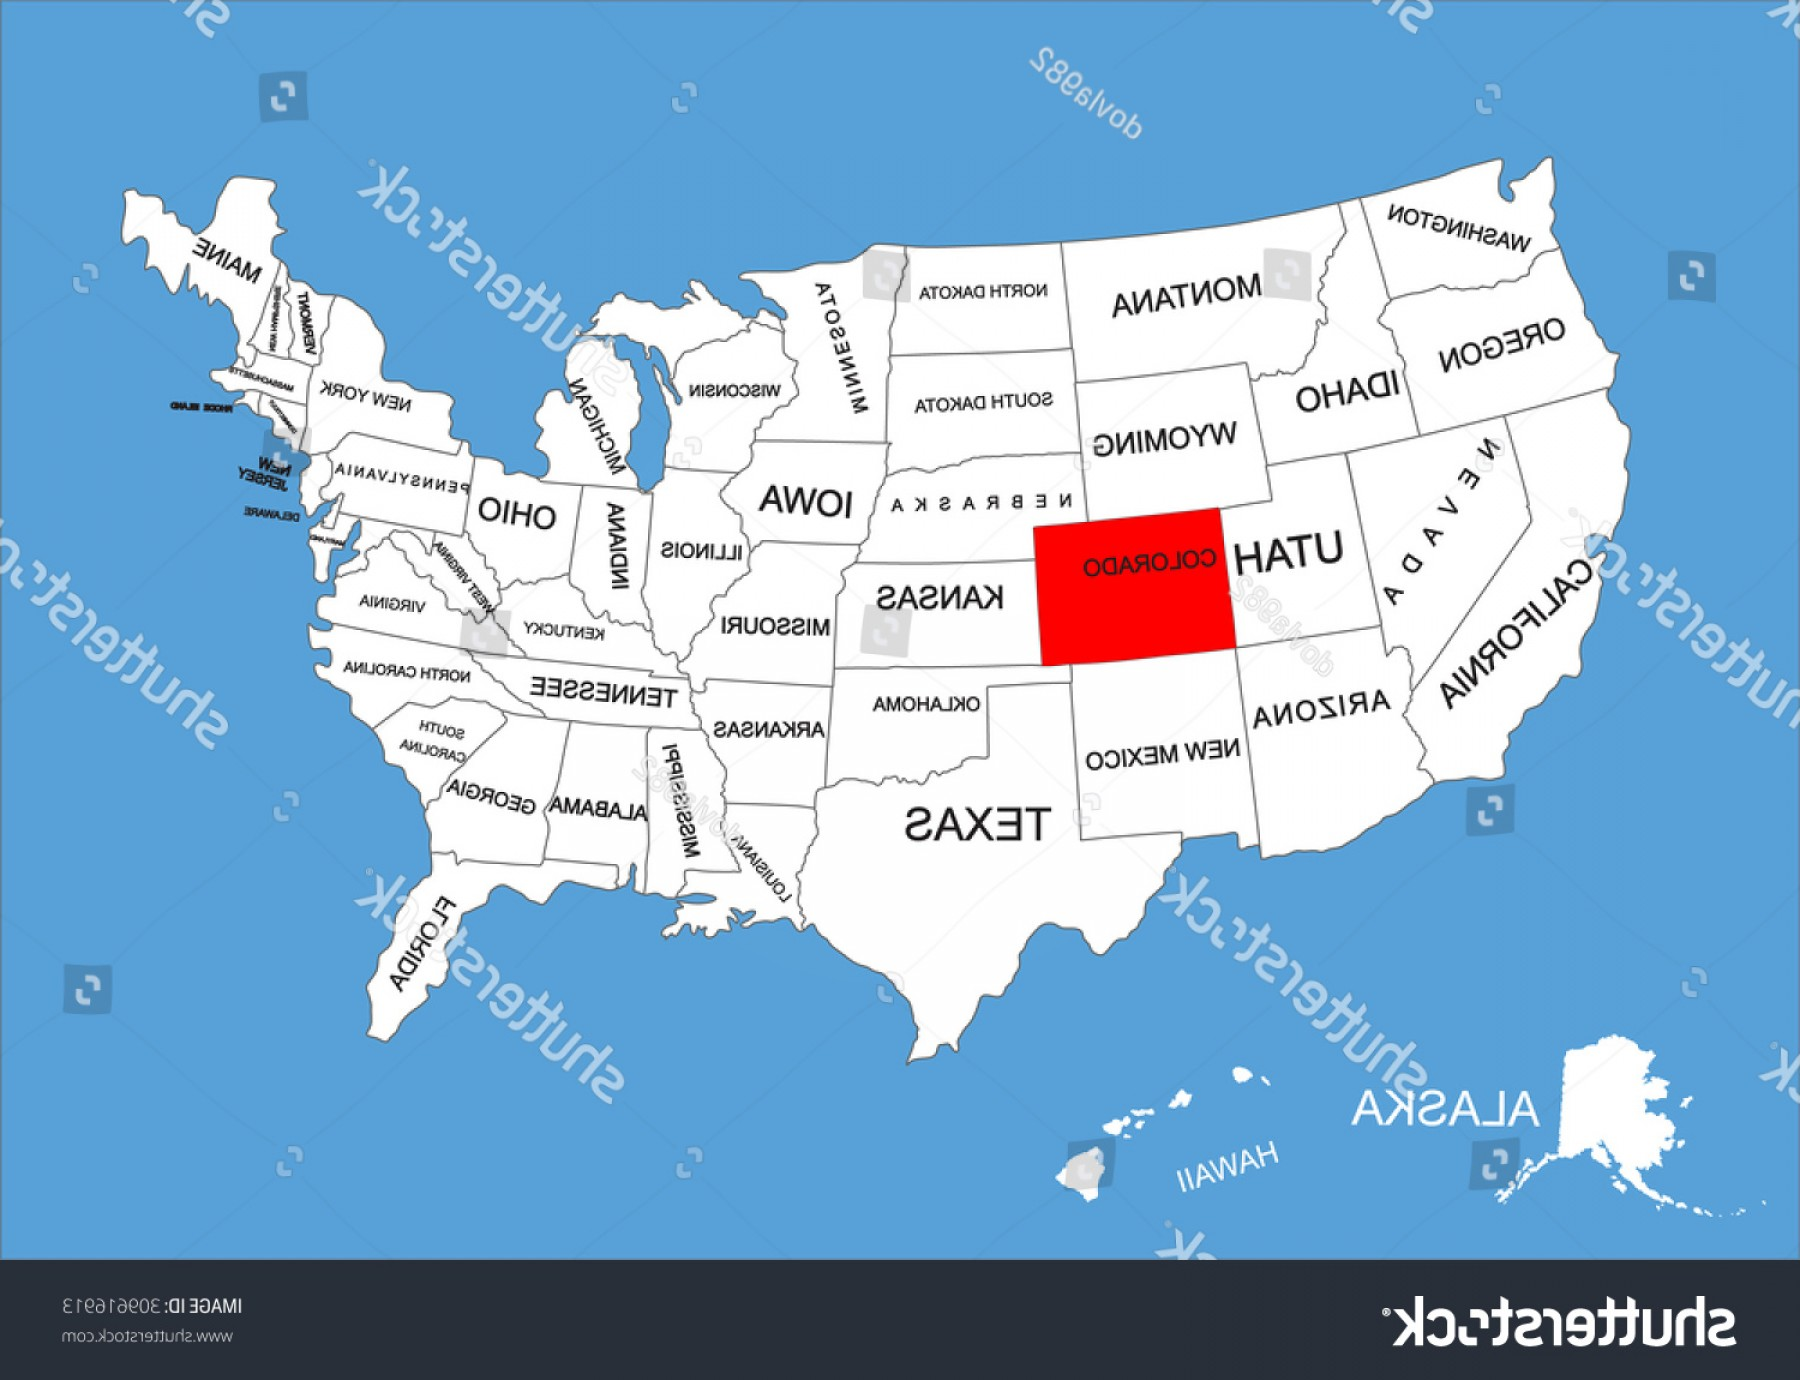 Colorado State Vector Maps: Colorado State Usa Vector Map Isolated